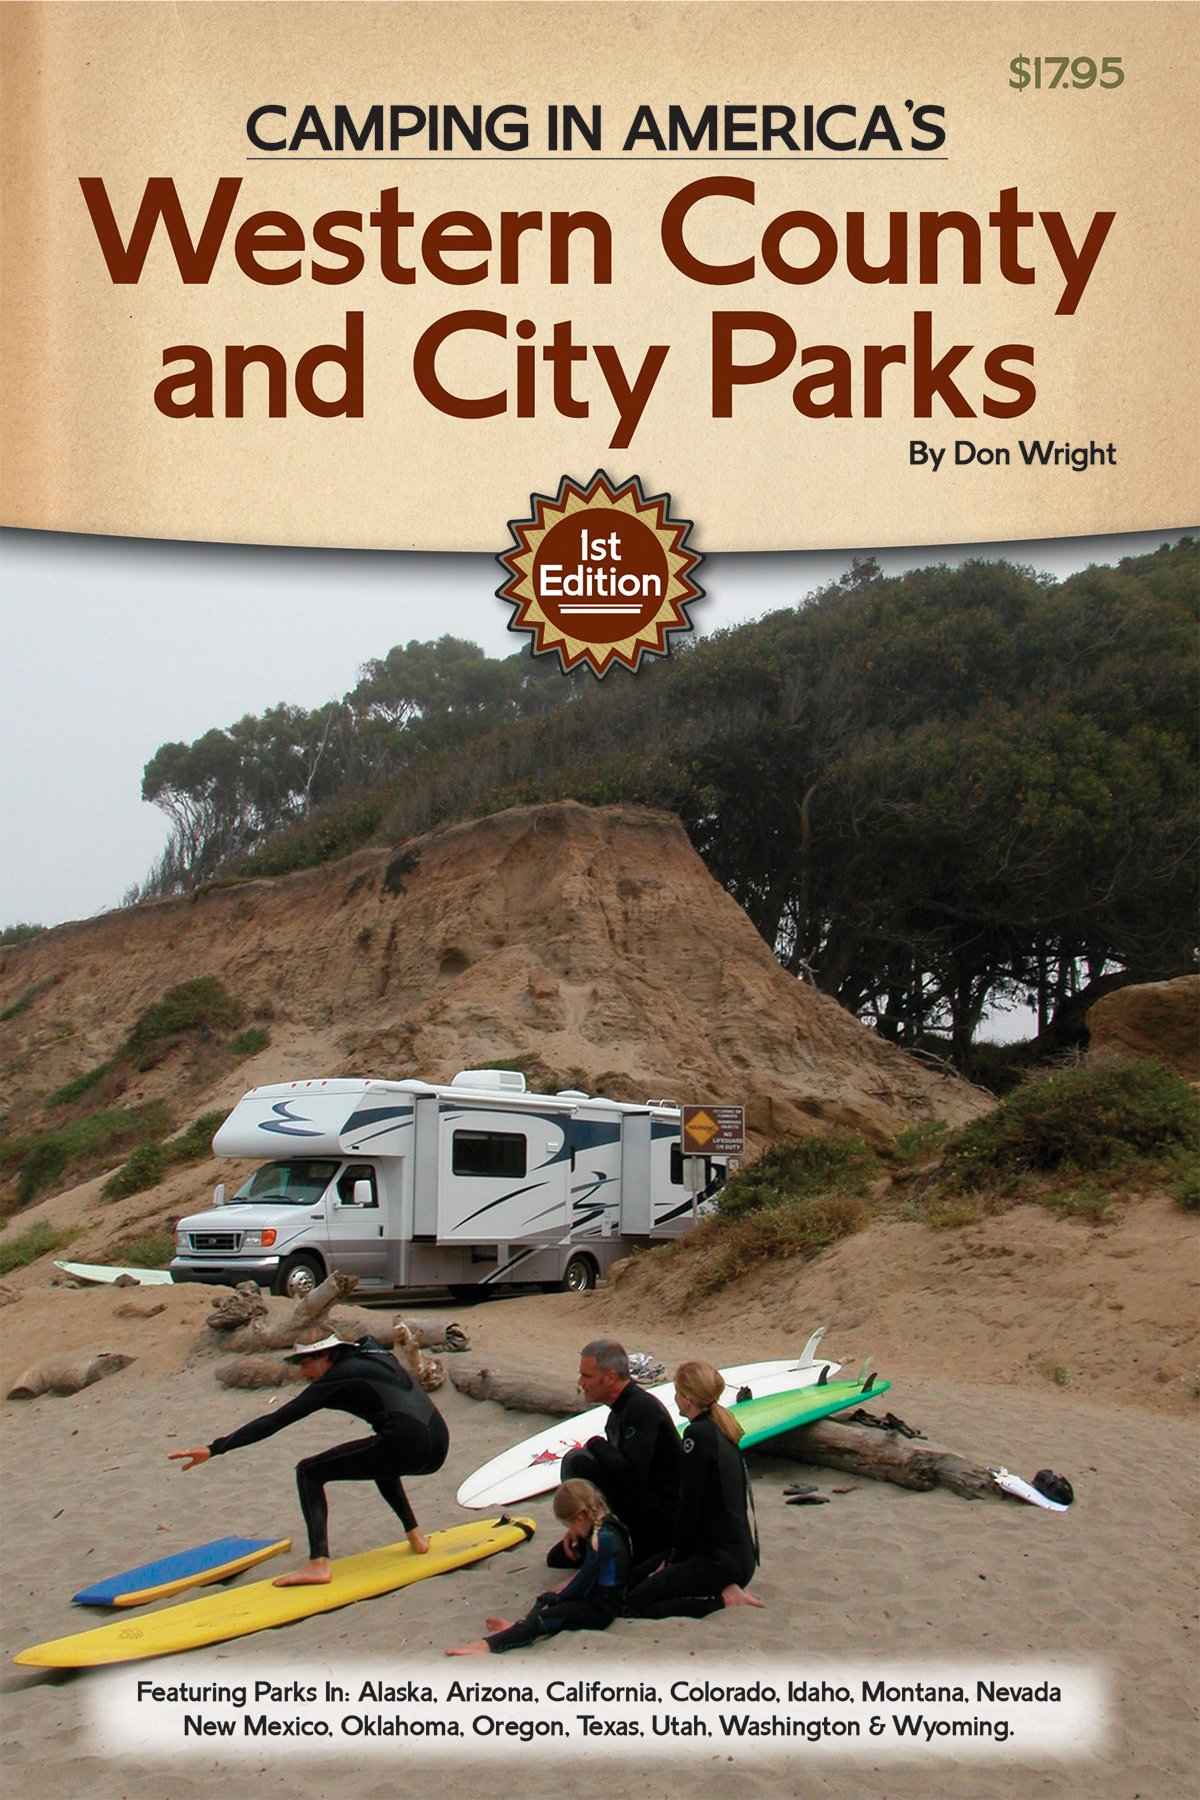 Camping in America's Guide to Western County and City Parks: Featuring  Parks in Alaska, Arizona, California, Colorado, Idaho, Montana, Nevada, New  .